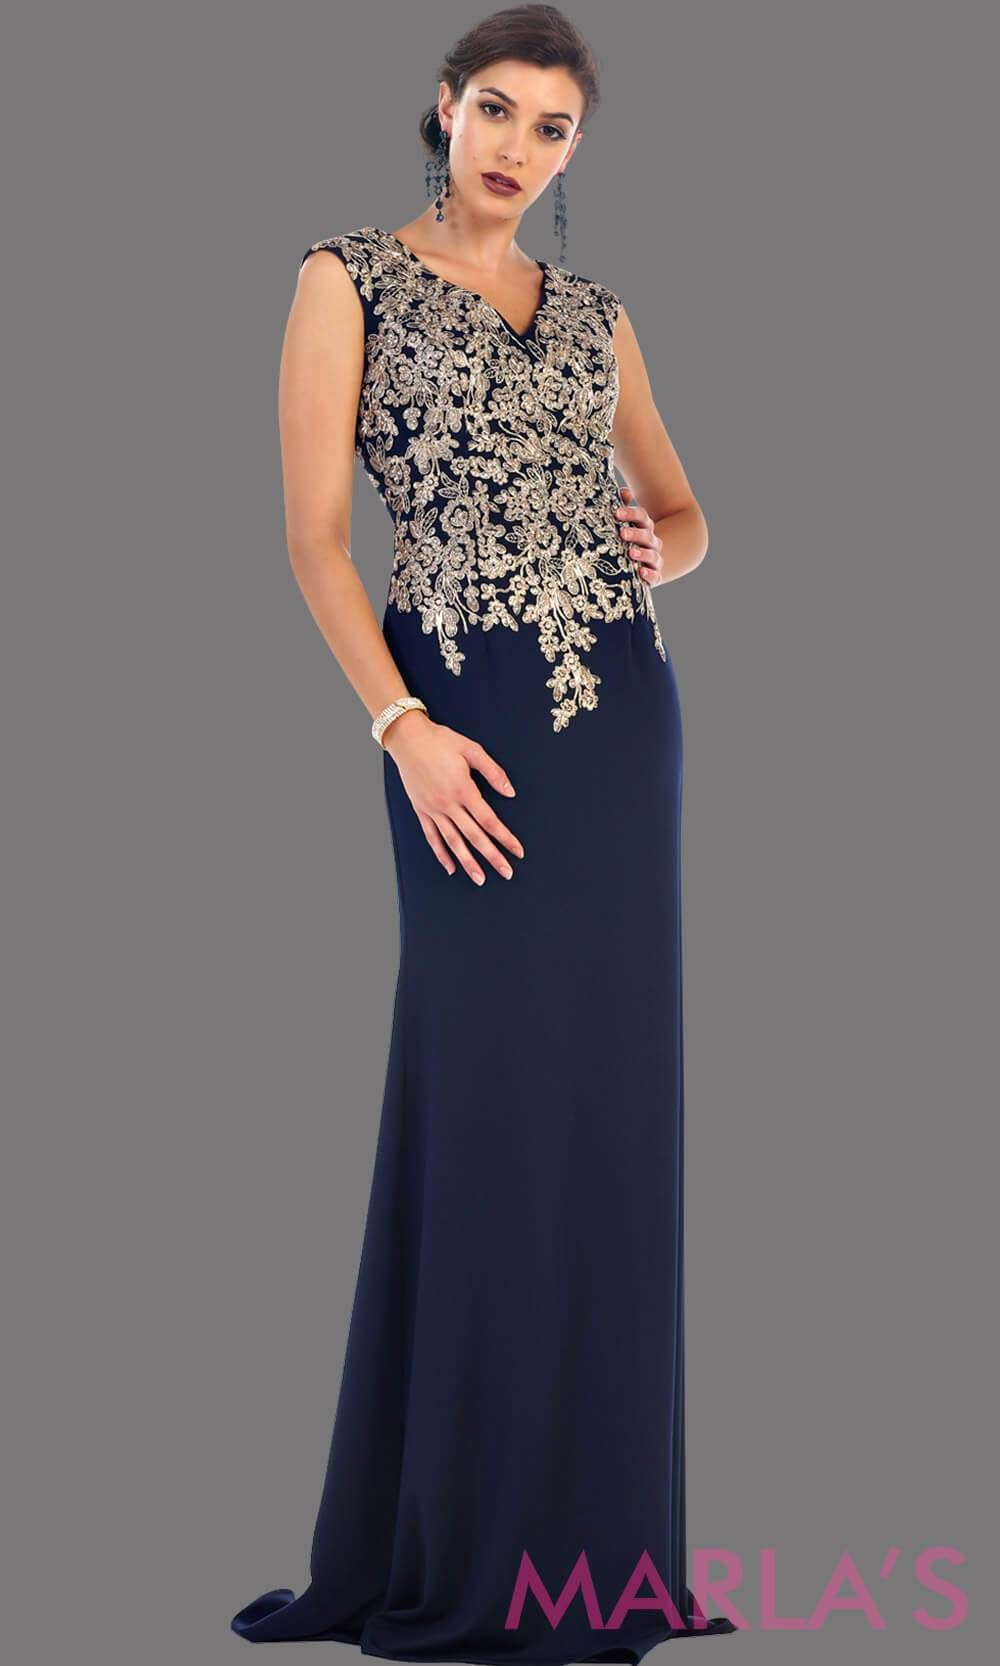 80e1cf21ac0 Long navy party dress with gold lace. This is a beautiful plus size dress  that is perfect as a modest dress